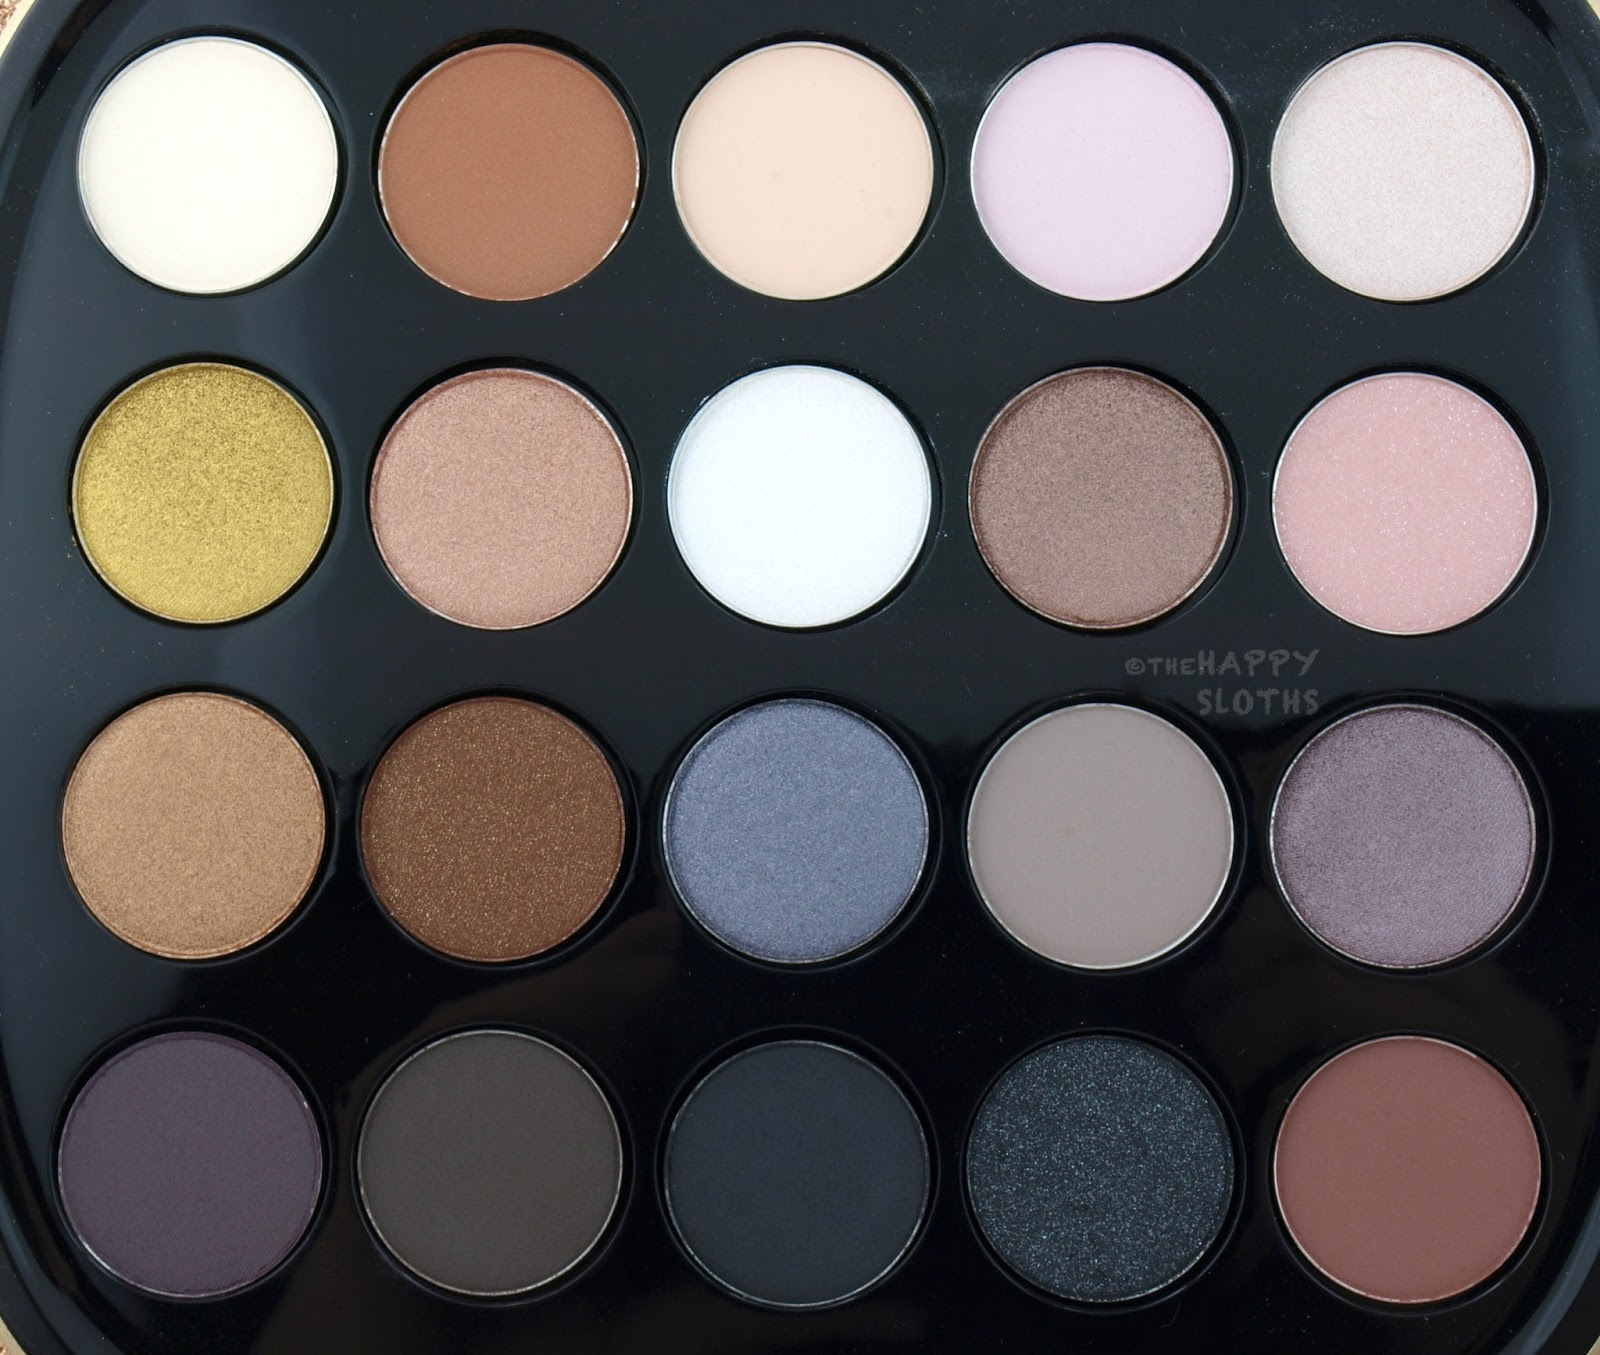 Marc Jacobs About Last Night Style Eye Con No 20 Eyeshadow Palette: Review and Swatches